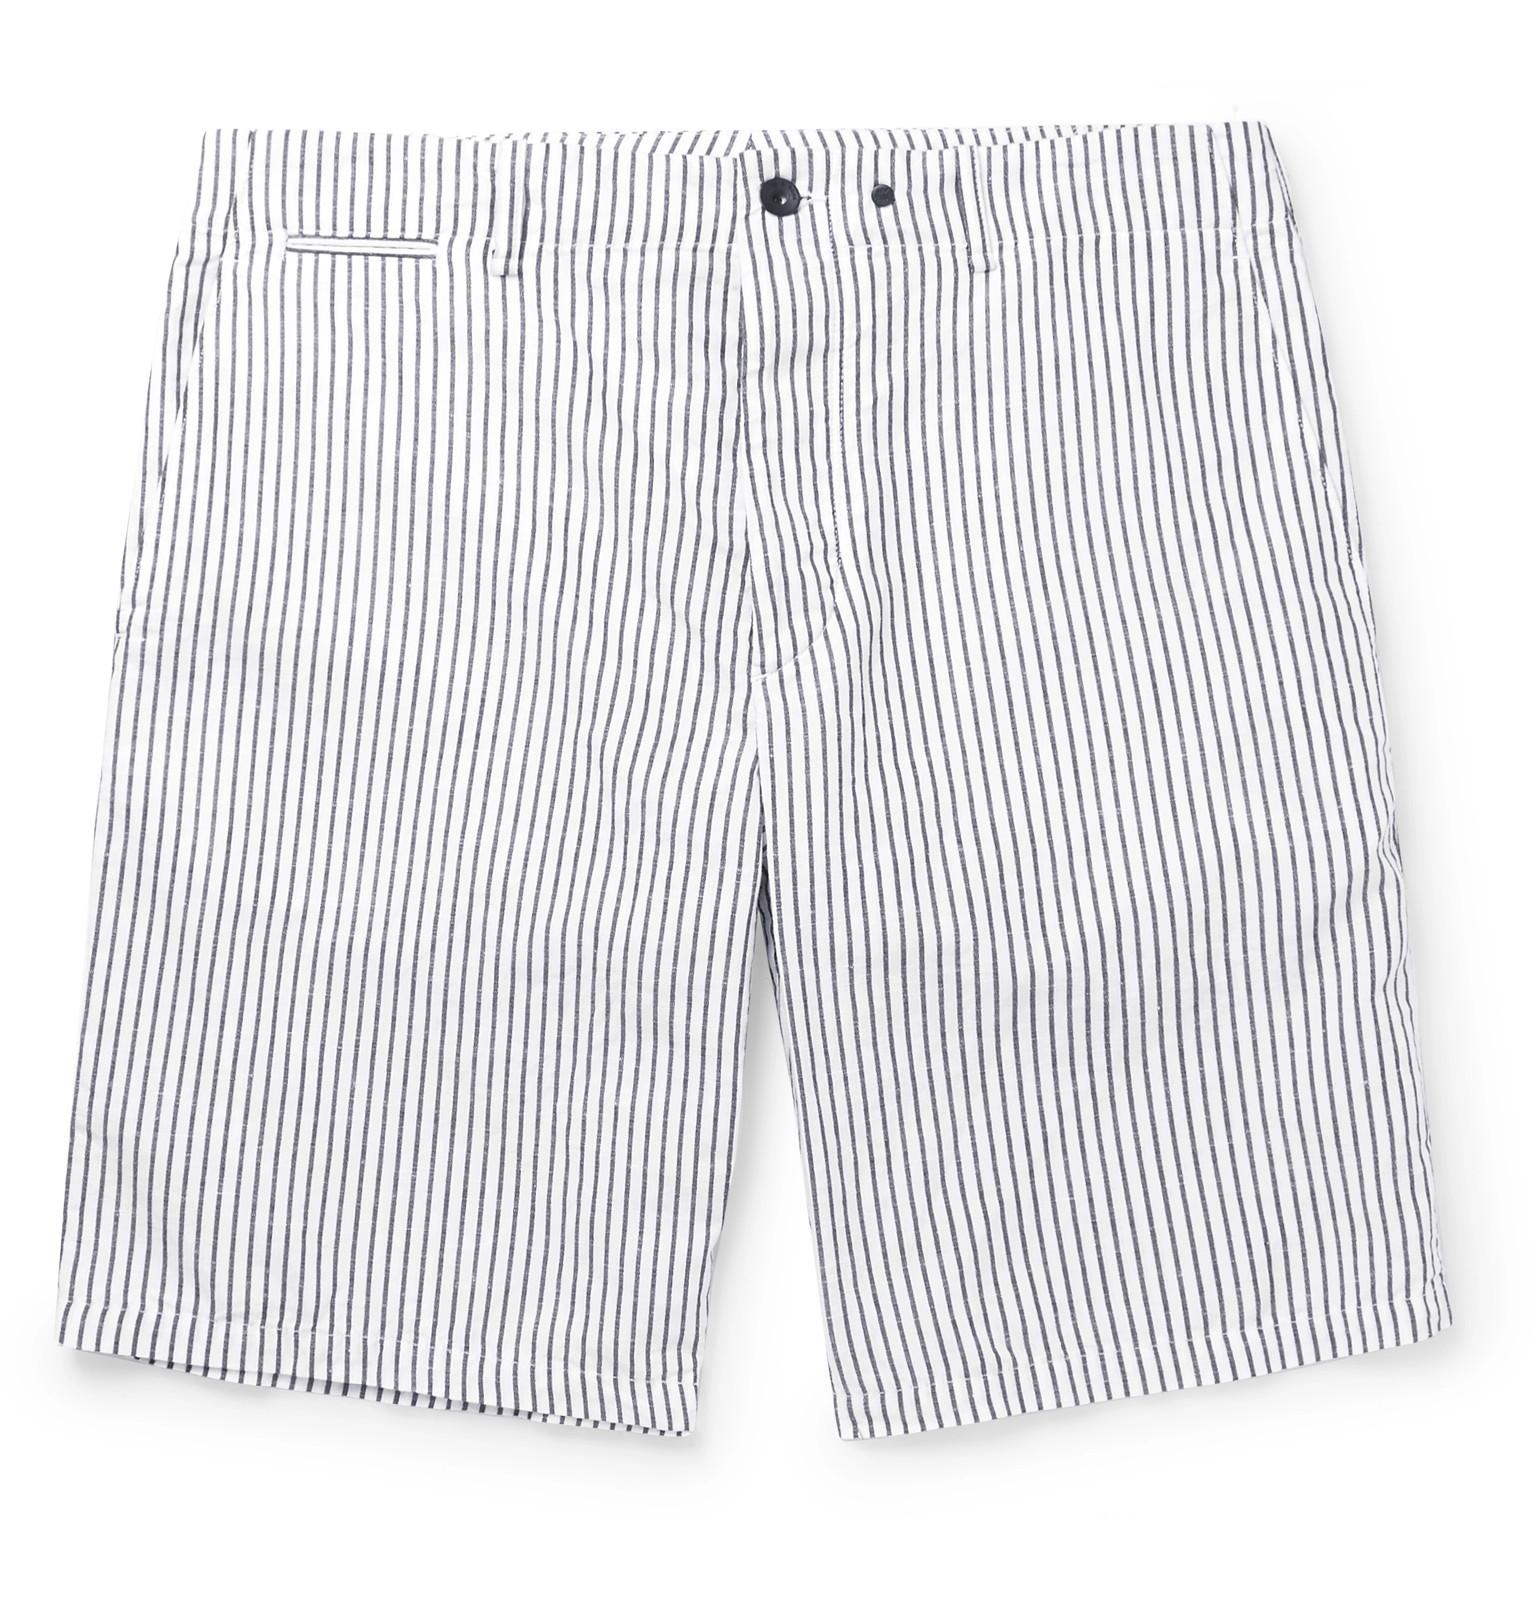 Beach Short Ii Striped Cotton And Linen-blend Shorts Rag & Bone GdnzCIe